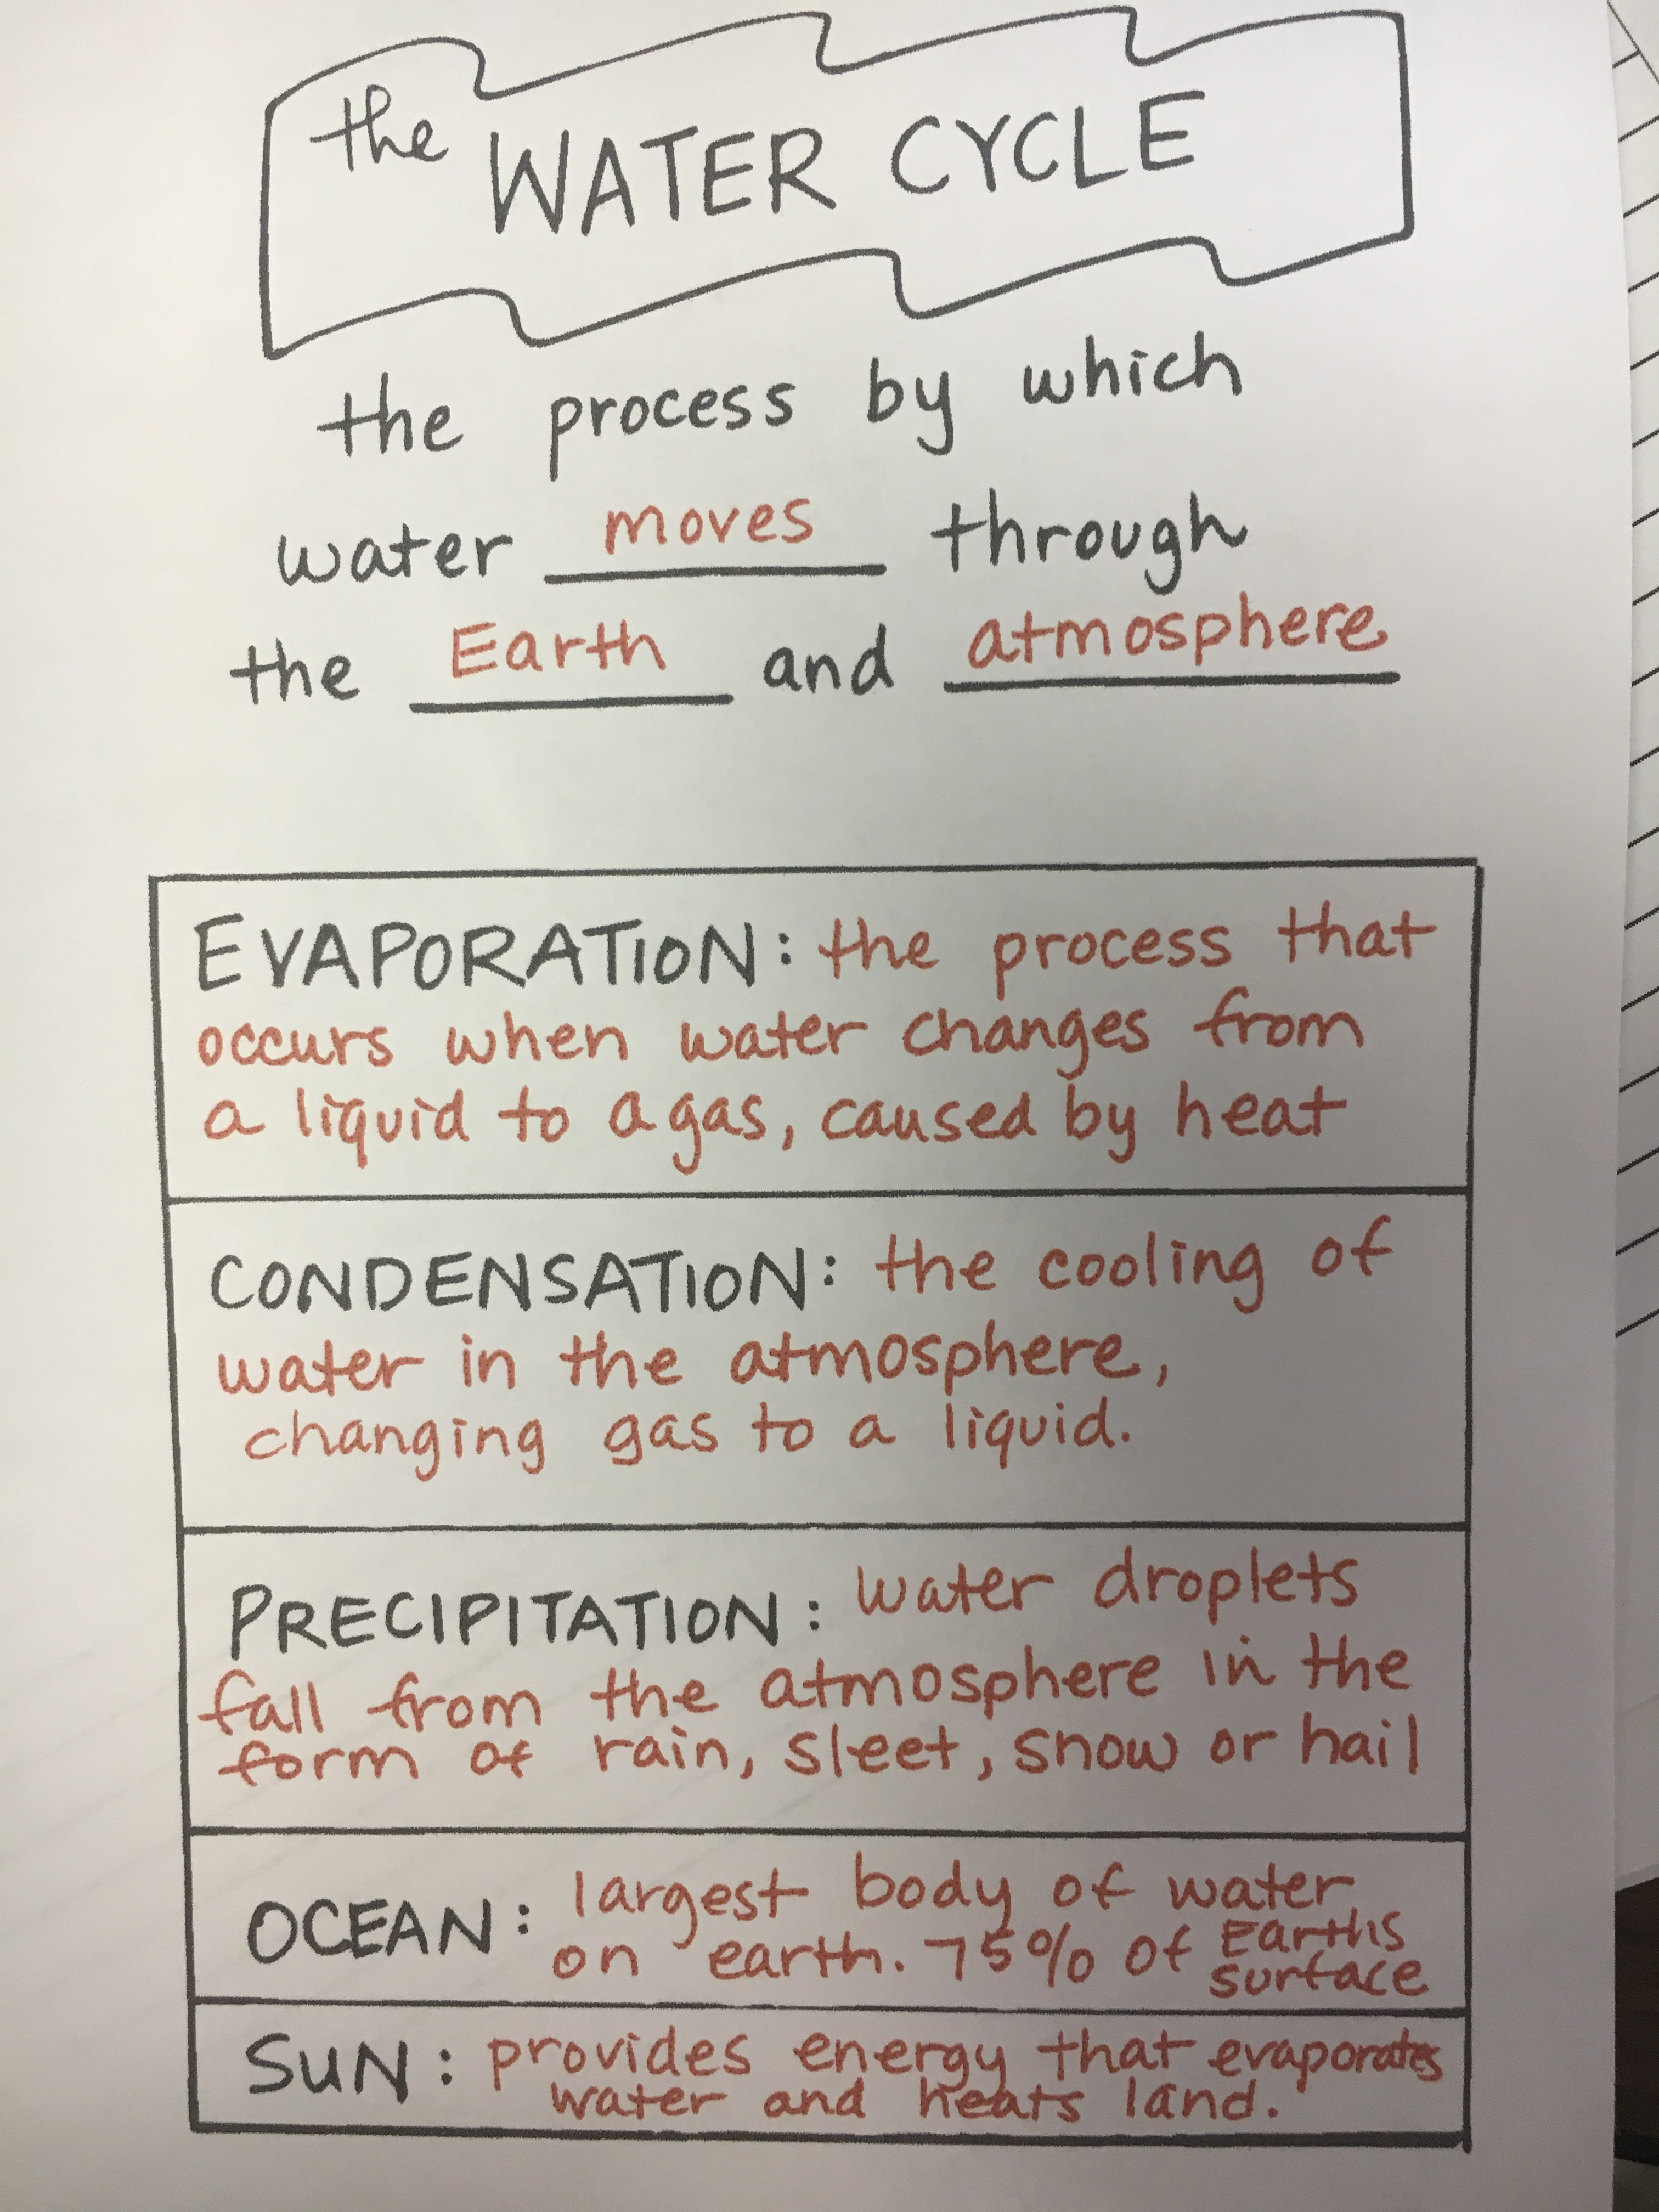 Water Cycle Review 9 13 17 Toisnot Middle School Grade 8